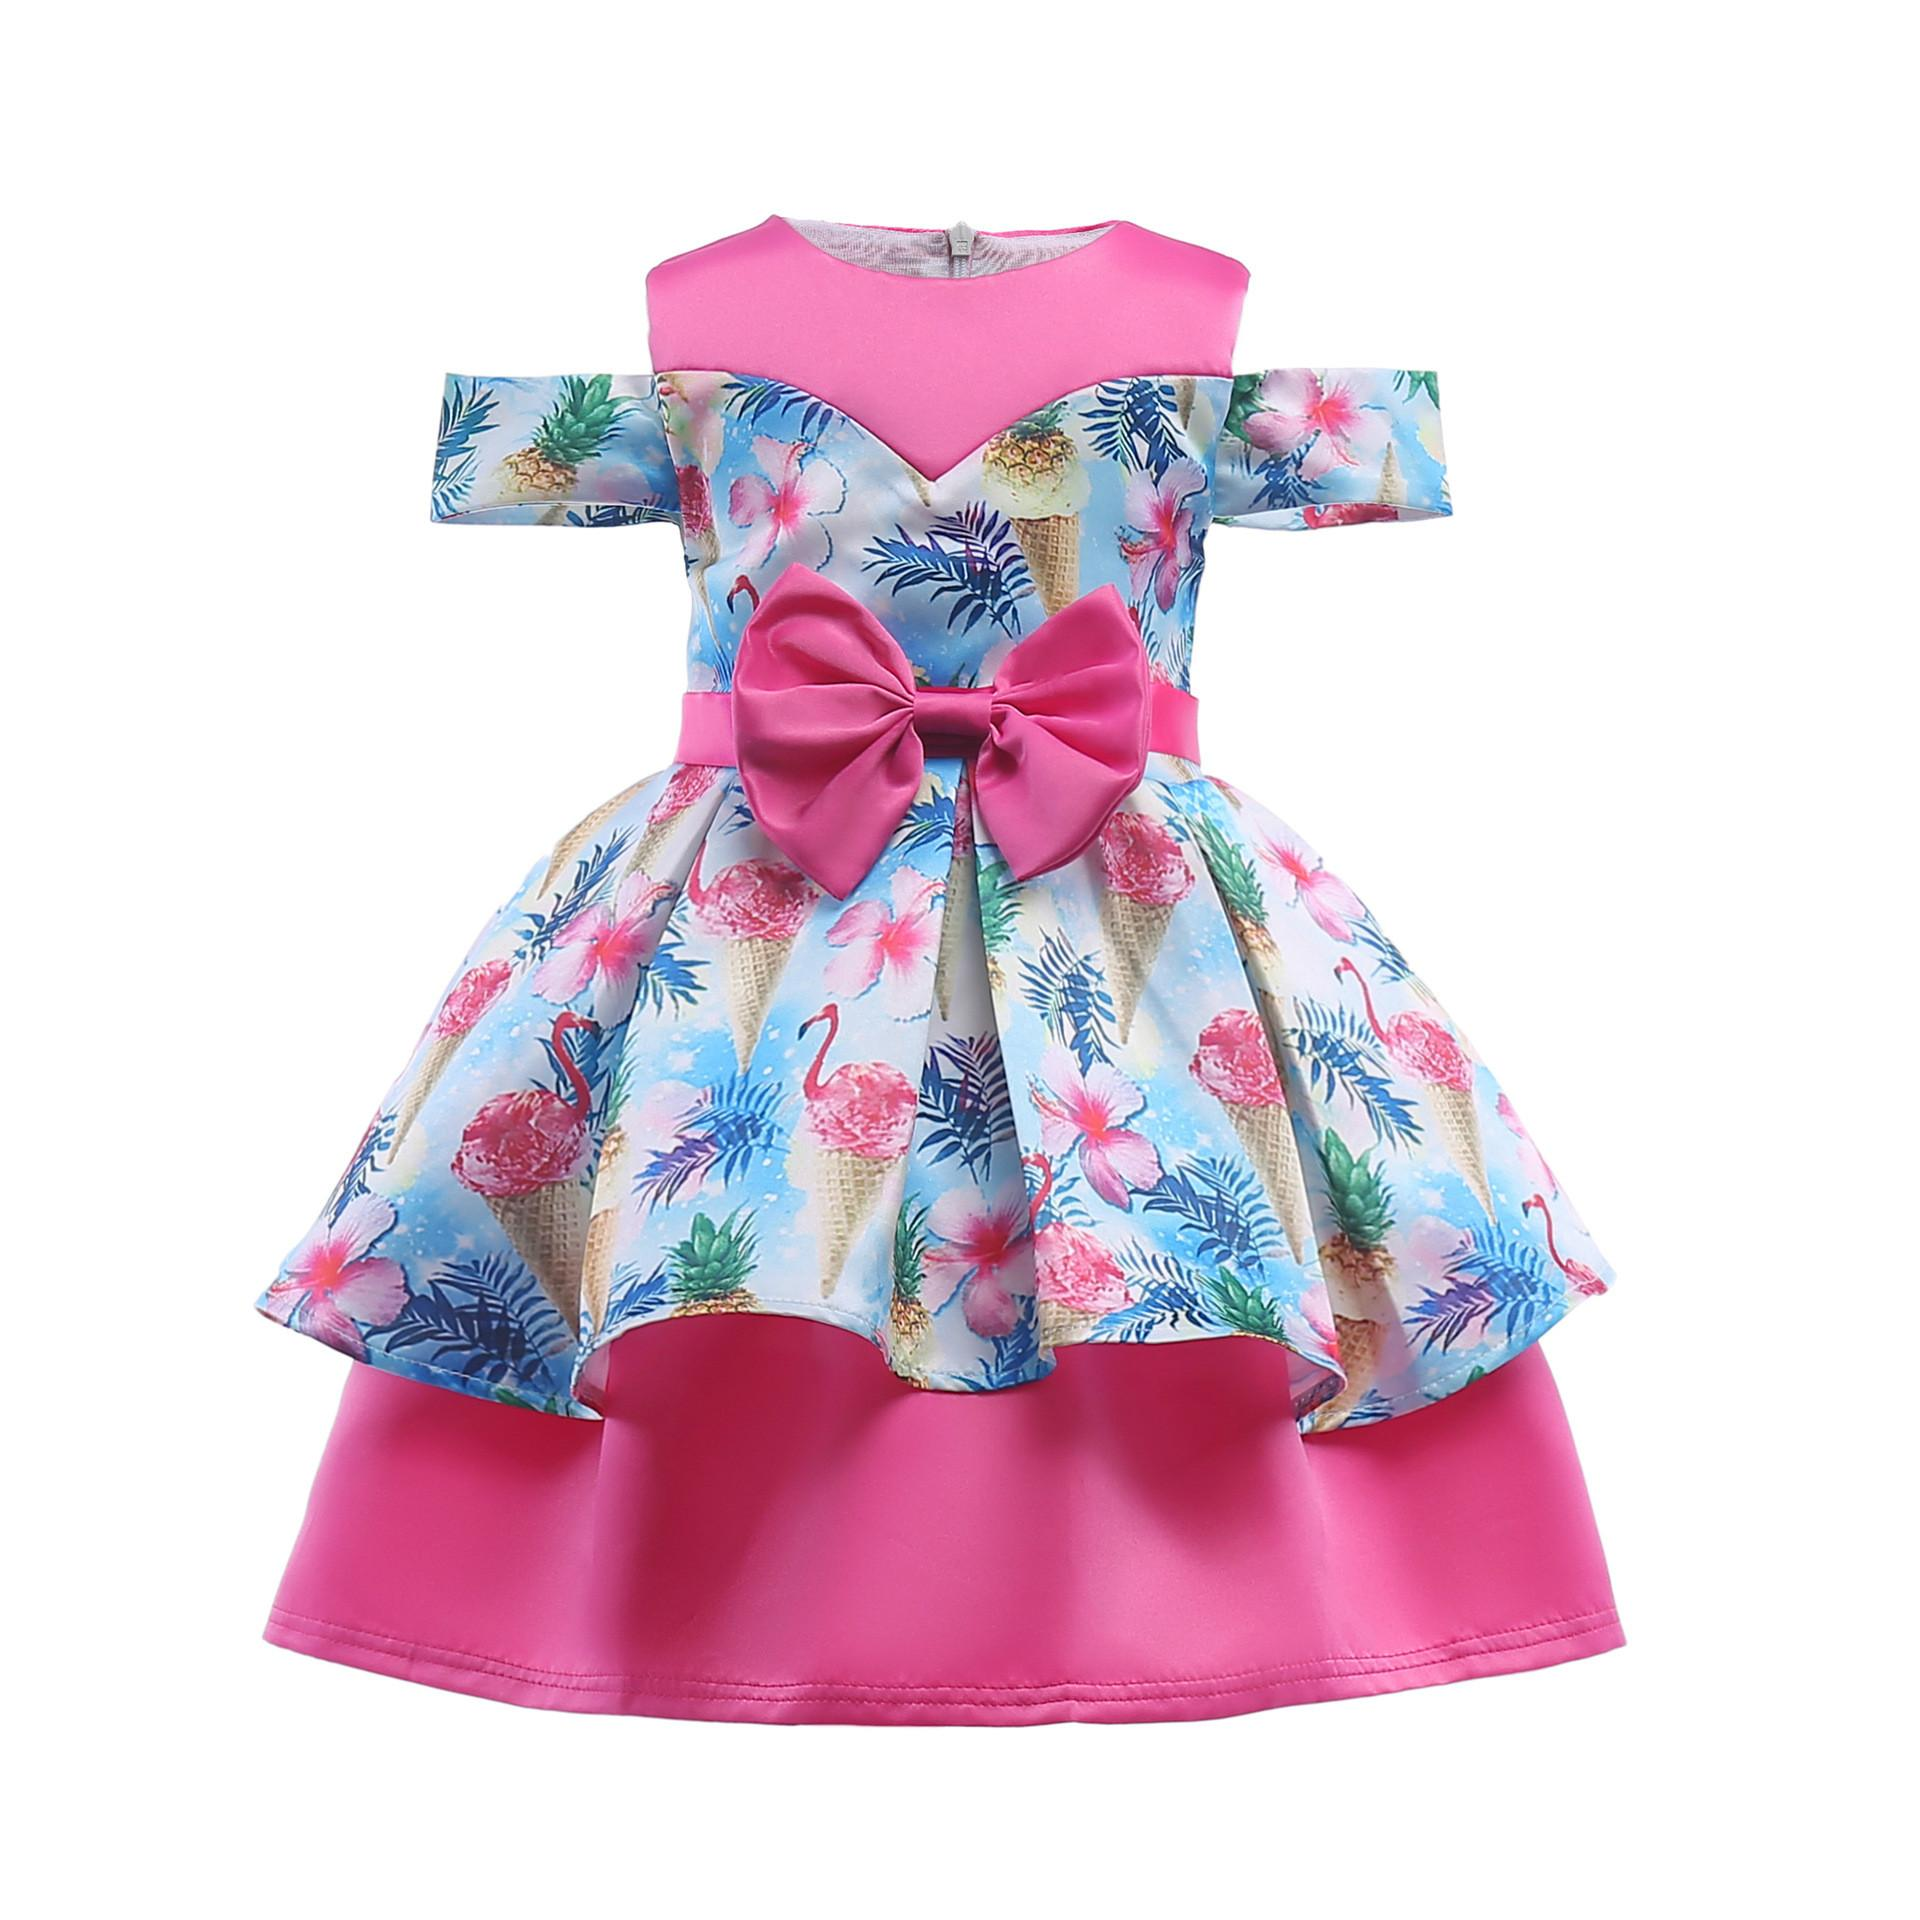 c136d73f2 Girls Dress Flamingo Print Off-the-shoulder Bow Decoration Children's  Summer Clothing for 95-140cm Girls